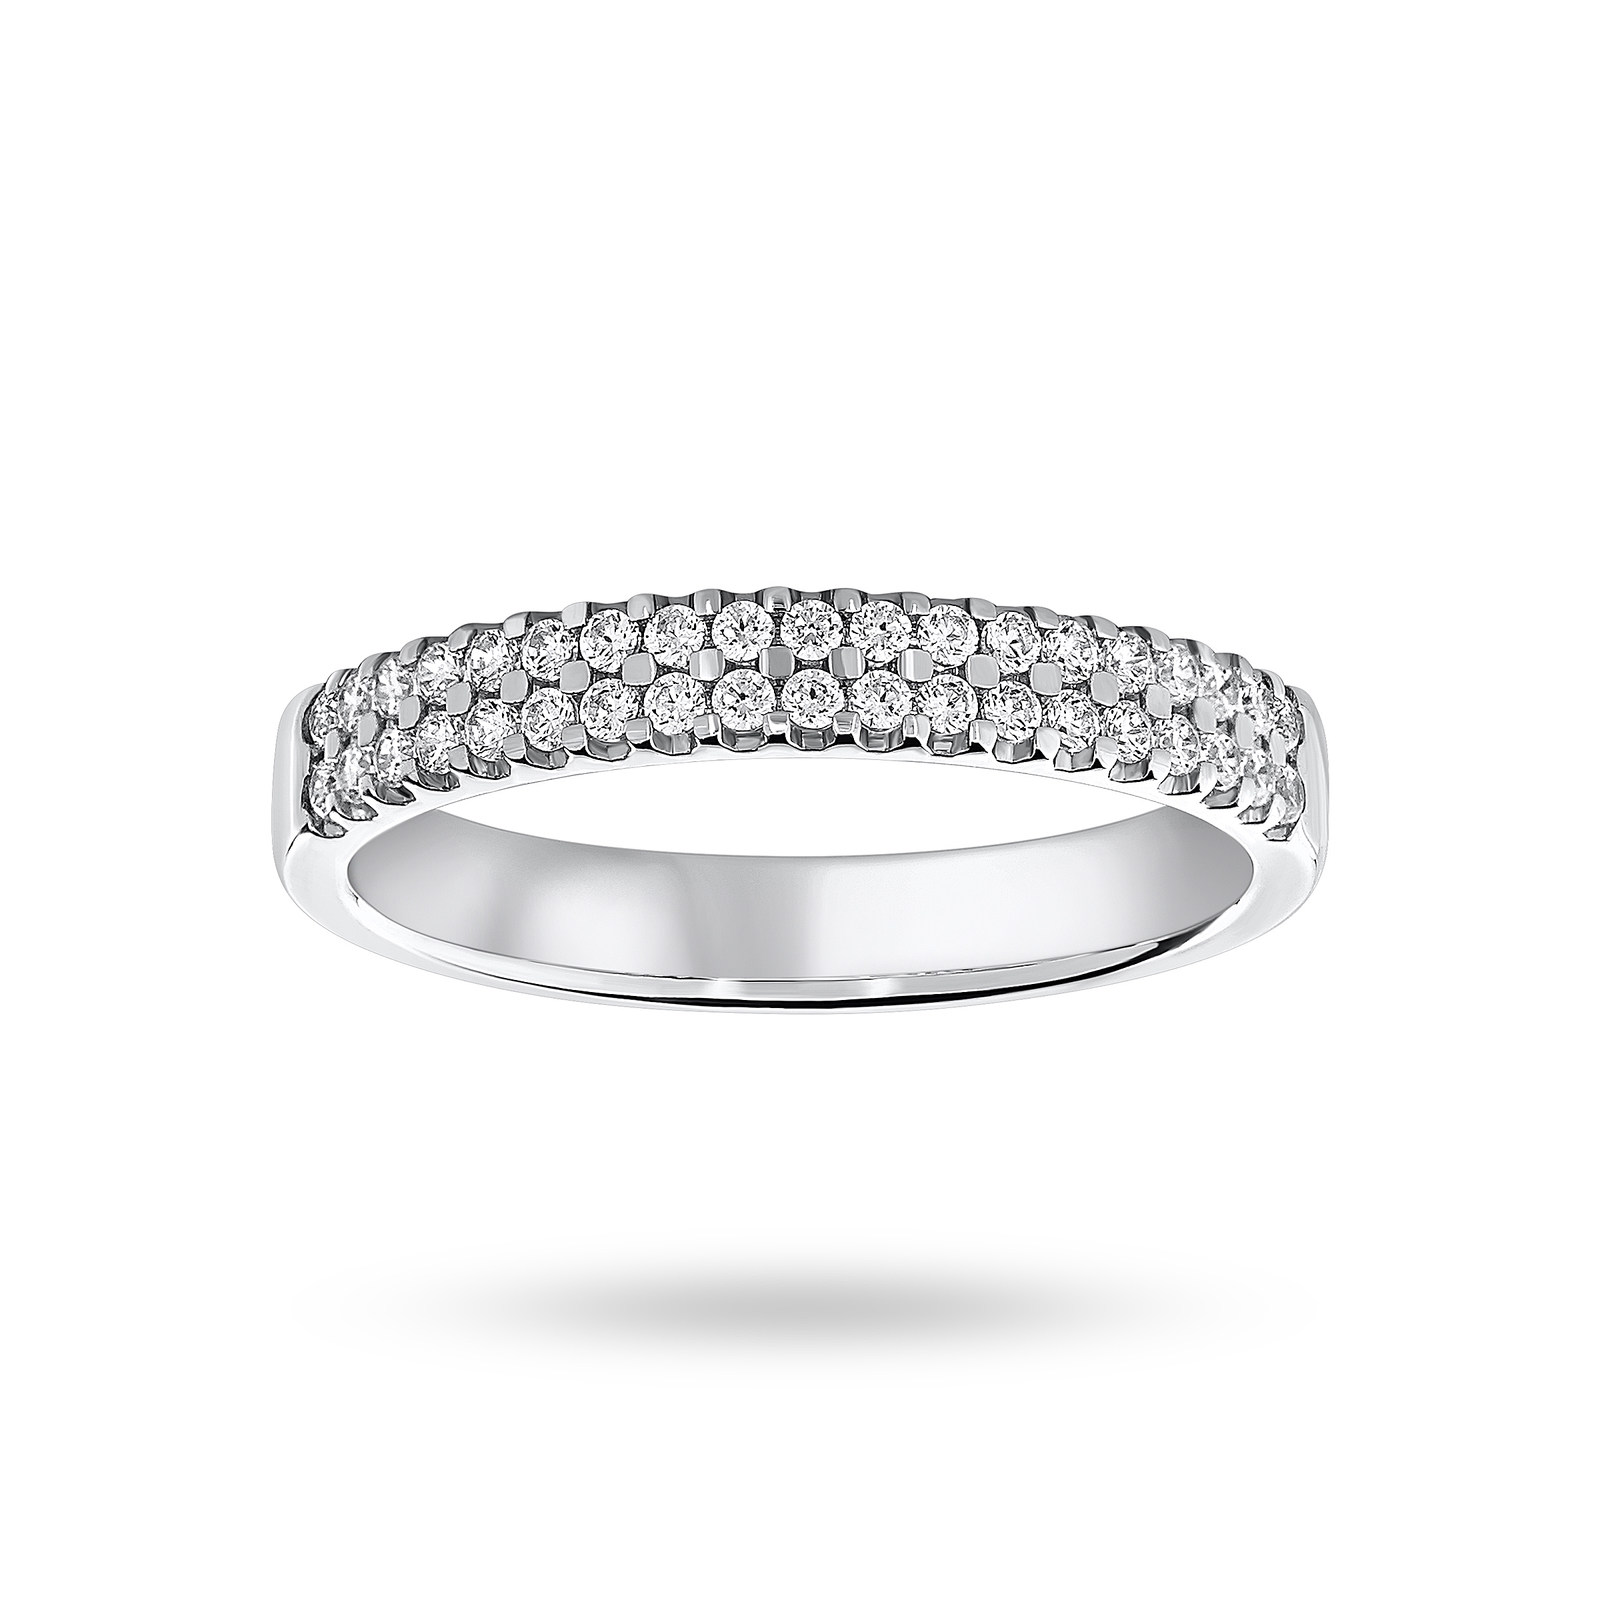 18 Carat White Gold 0.25 Carat Brilliant Cut 2 Row Claw Set Half Eternity Ring